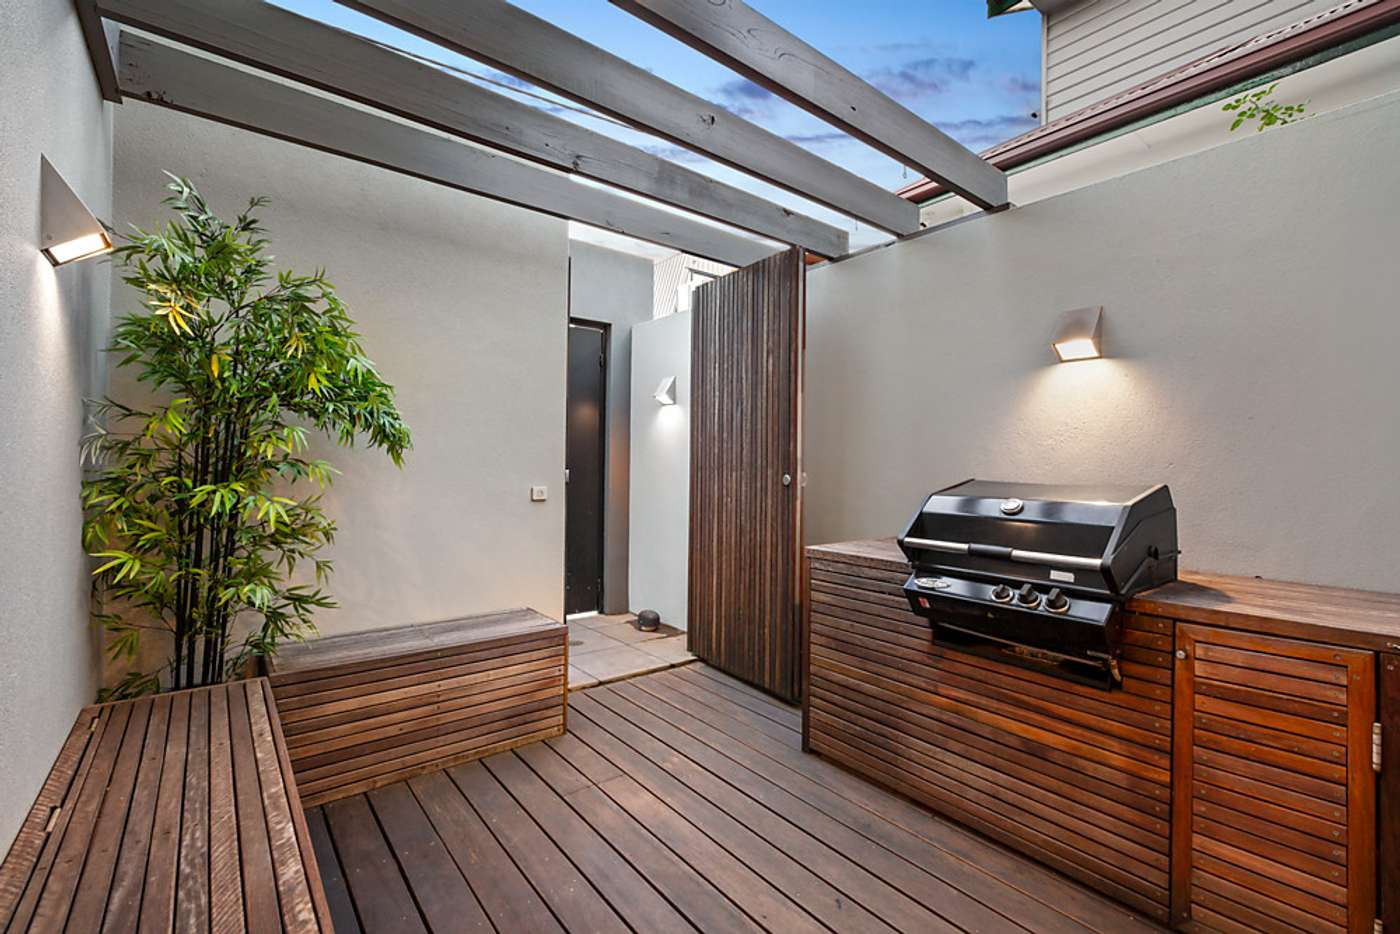 Sixth view of Homely house listing, 11 Carroll Street, Richmond VIC 3121